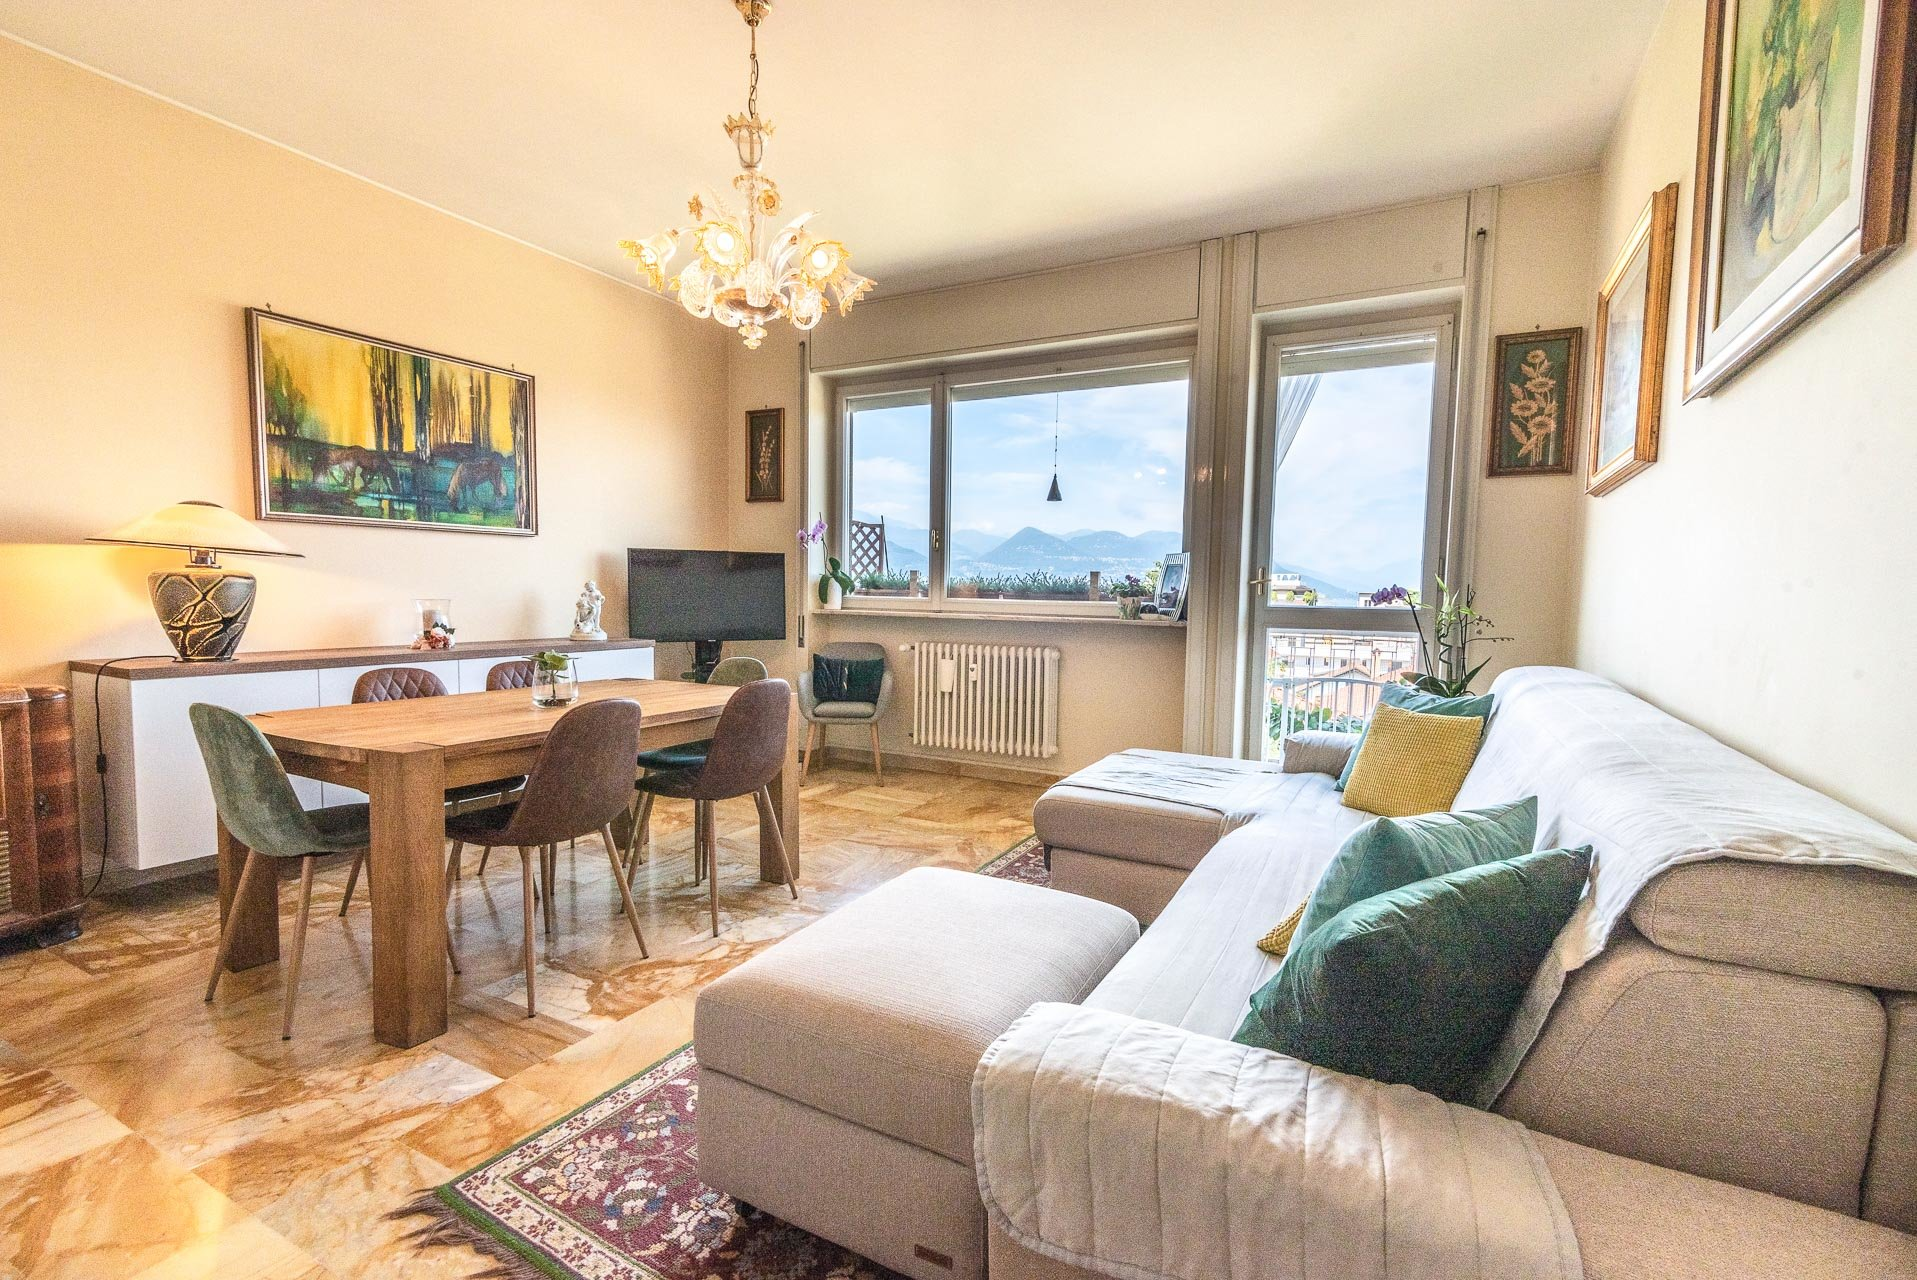 Apartment fo sale in Stresa centre - living room